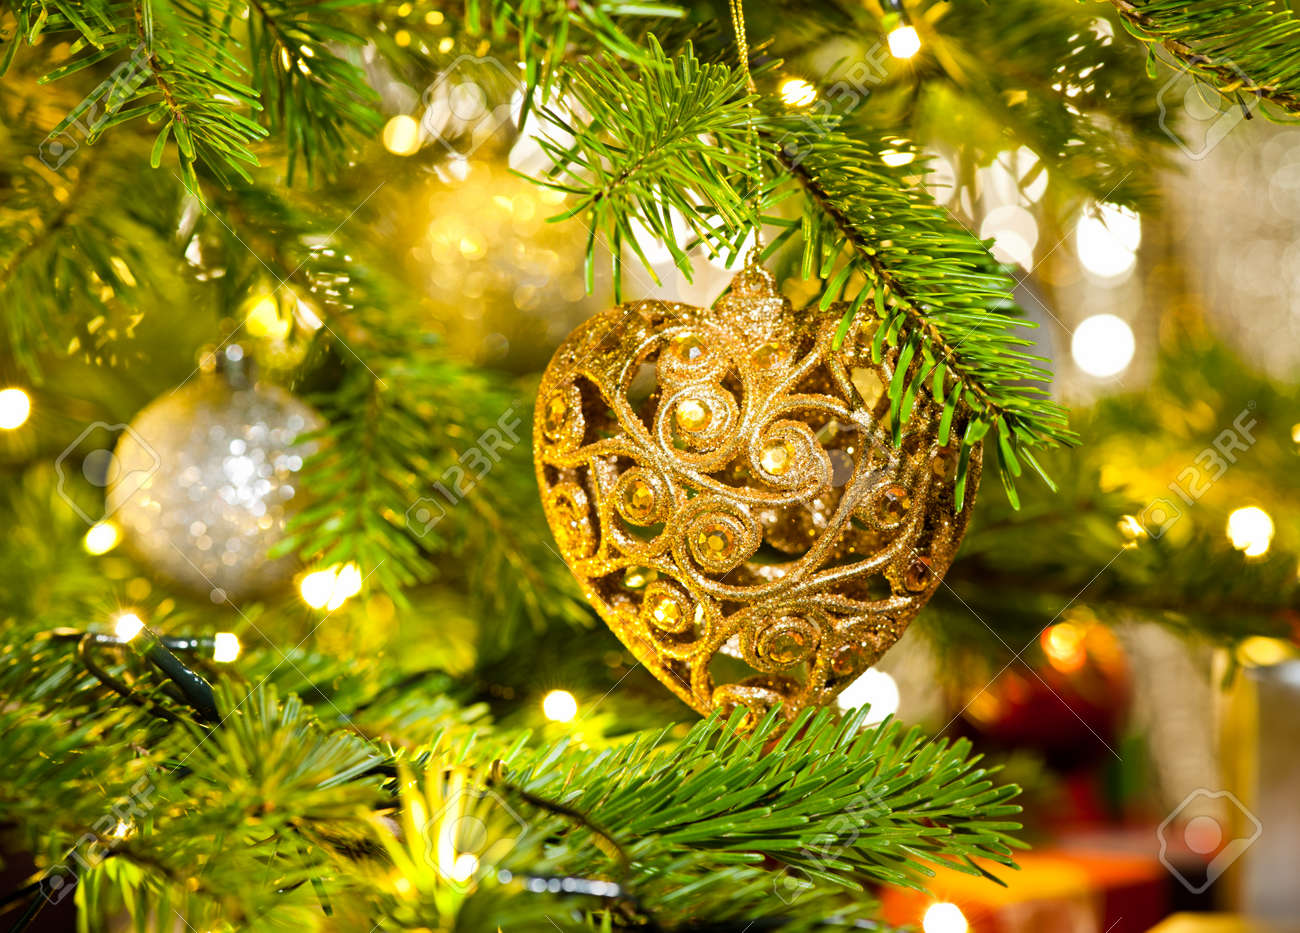 Xmas Ornament In A Real Christmas Tree In Bright Color Stock Photo Picture And Royalty Free Image Image 27883978